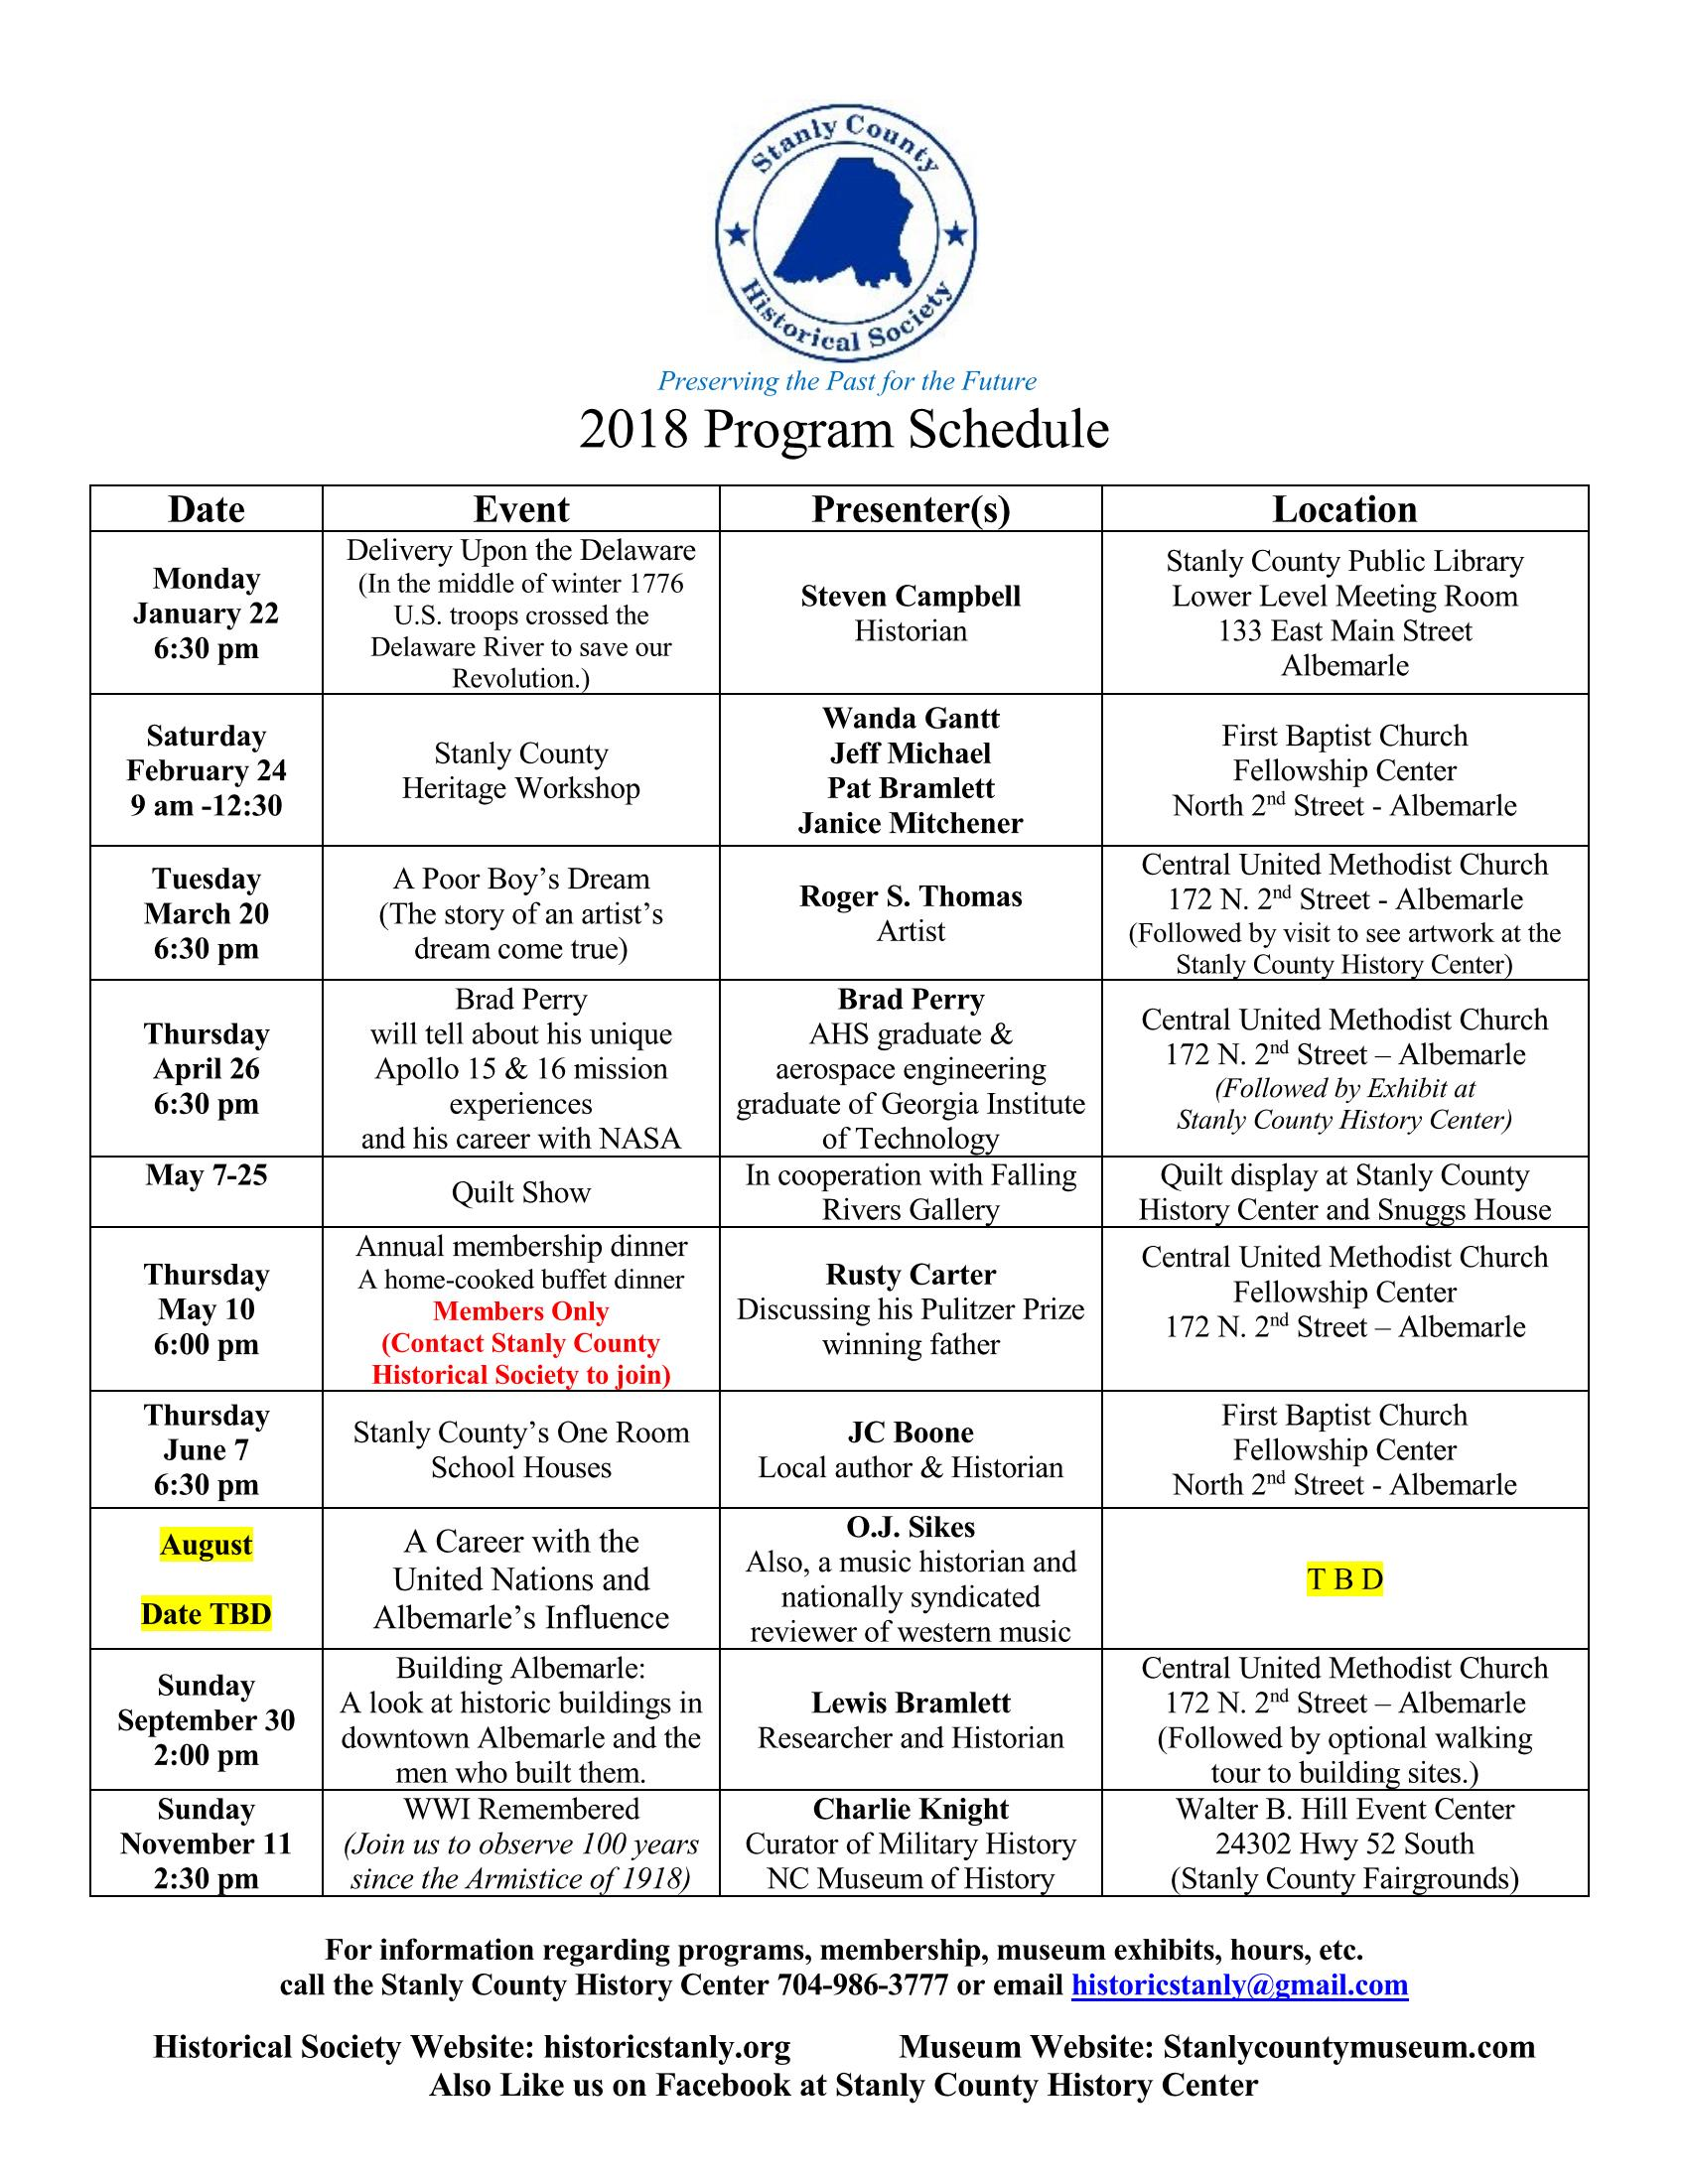 Historical Society Event Schedule 2018